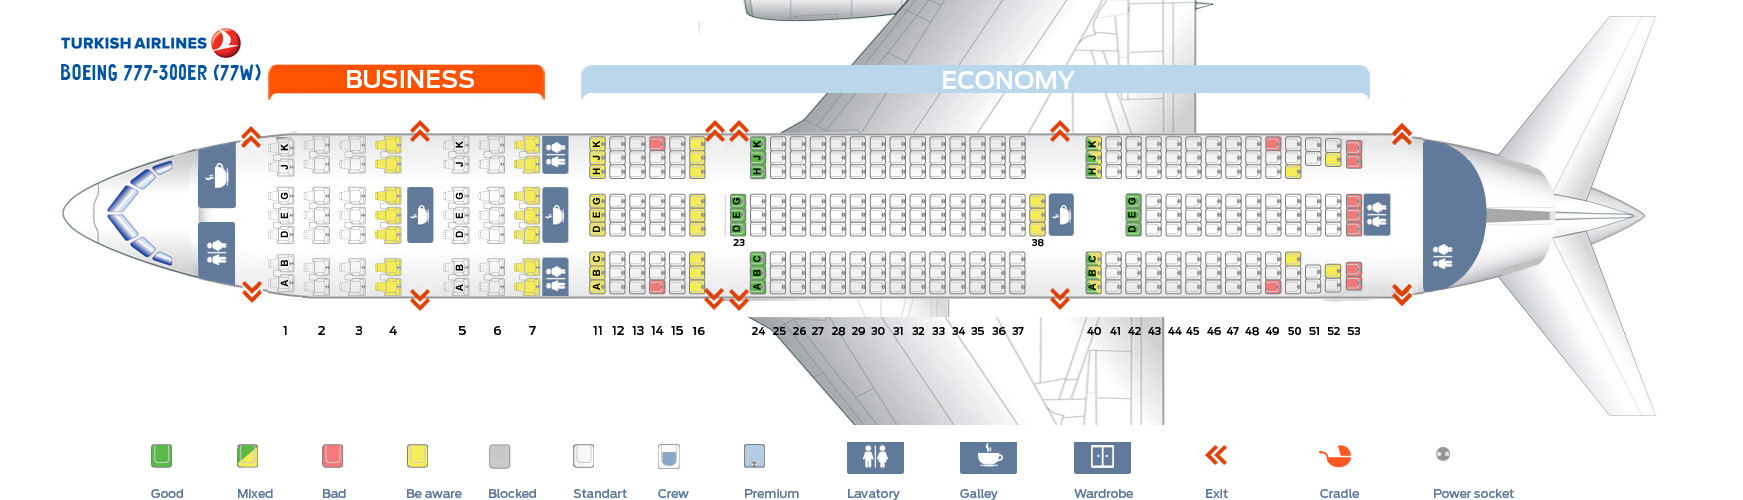 Seat Map Boeing 777-300ER Turkish Airlines